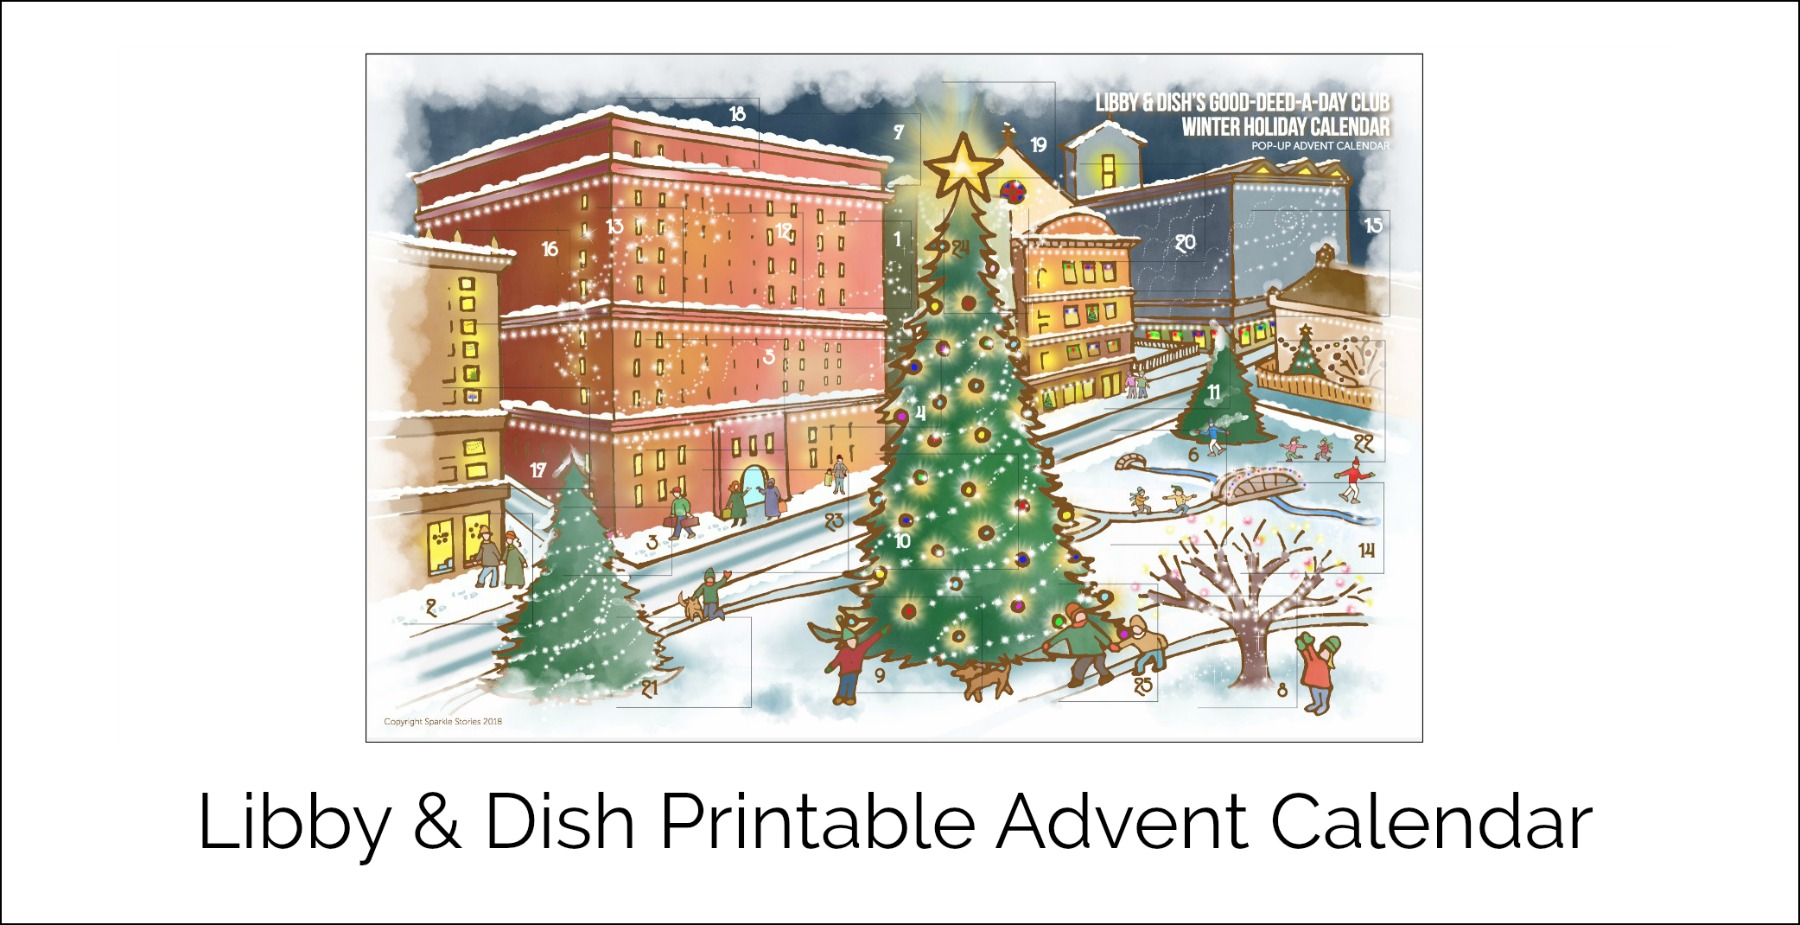 Libby & Dish Printable Advent Calendar 2018 Front Banner for blog 1800